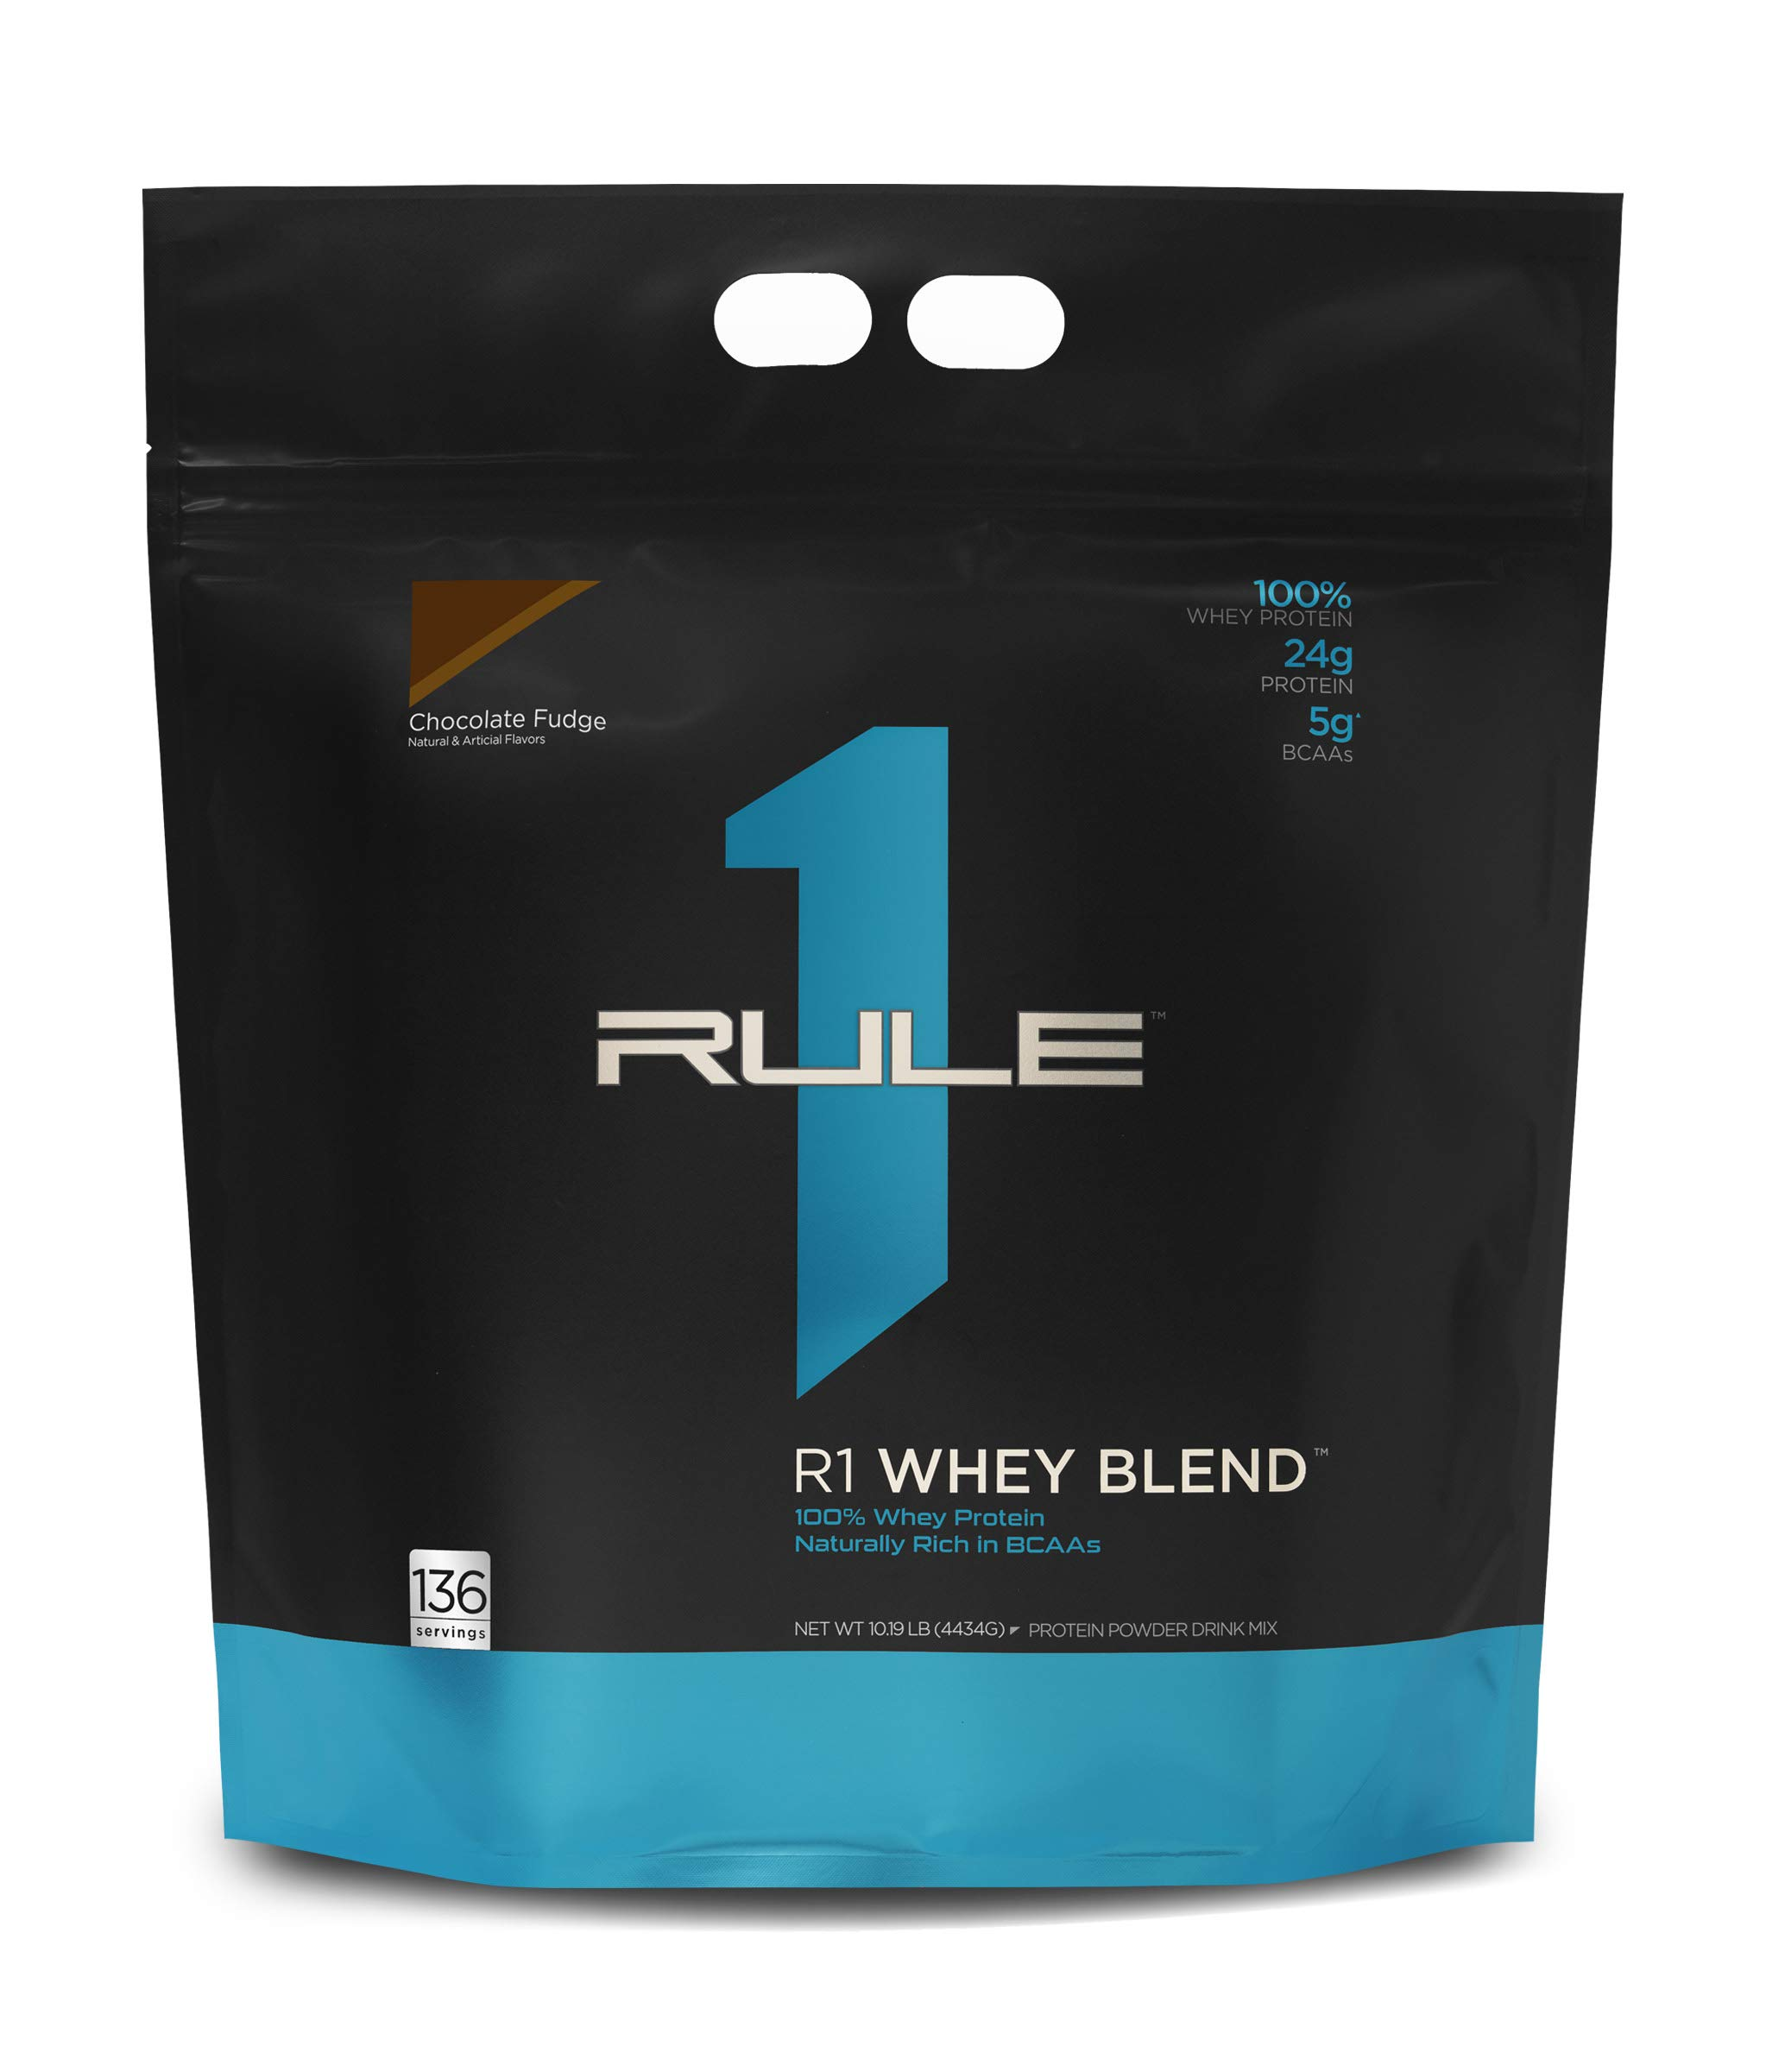 Rule One Proteins Whey Blend - Chocolate Fudge, 24g Fast-Acting Whey Protein Concentrates, Isolates, and Hydrolysates Per Serving, with Naturally Occurring EAAs and BCAAs, 136 Servings, 167.52 Ounce